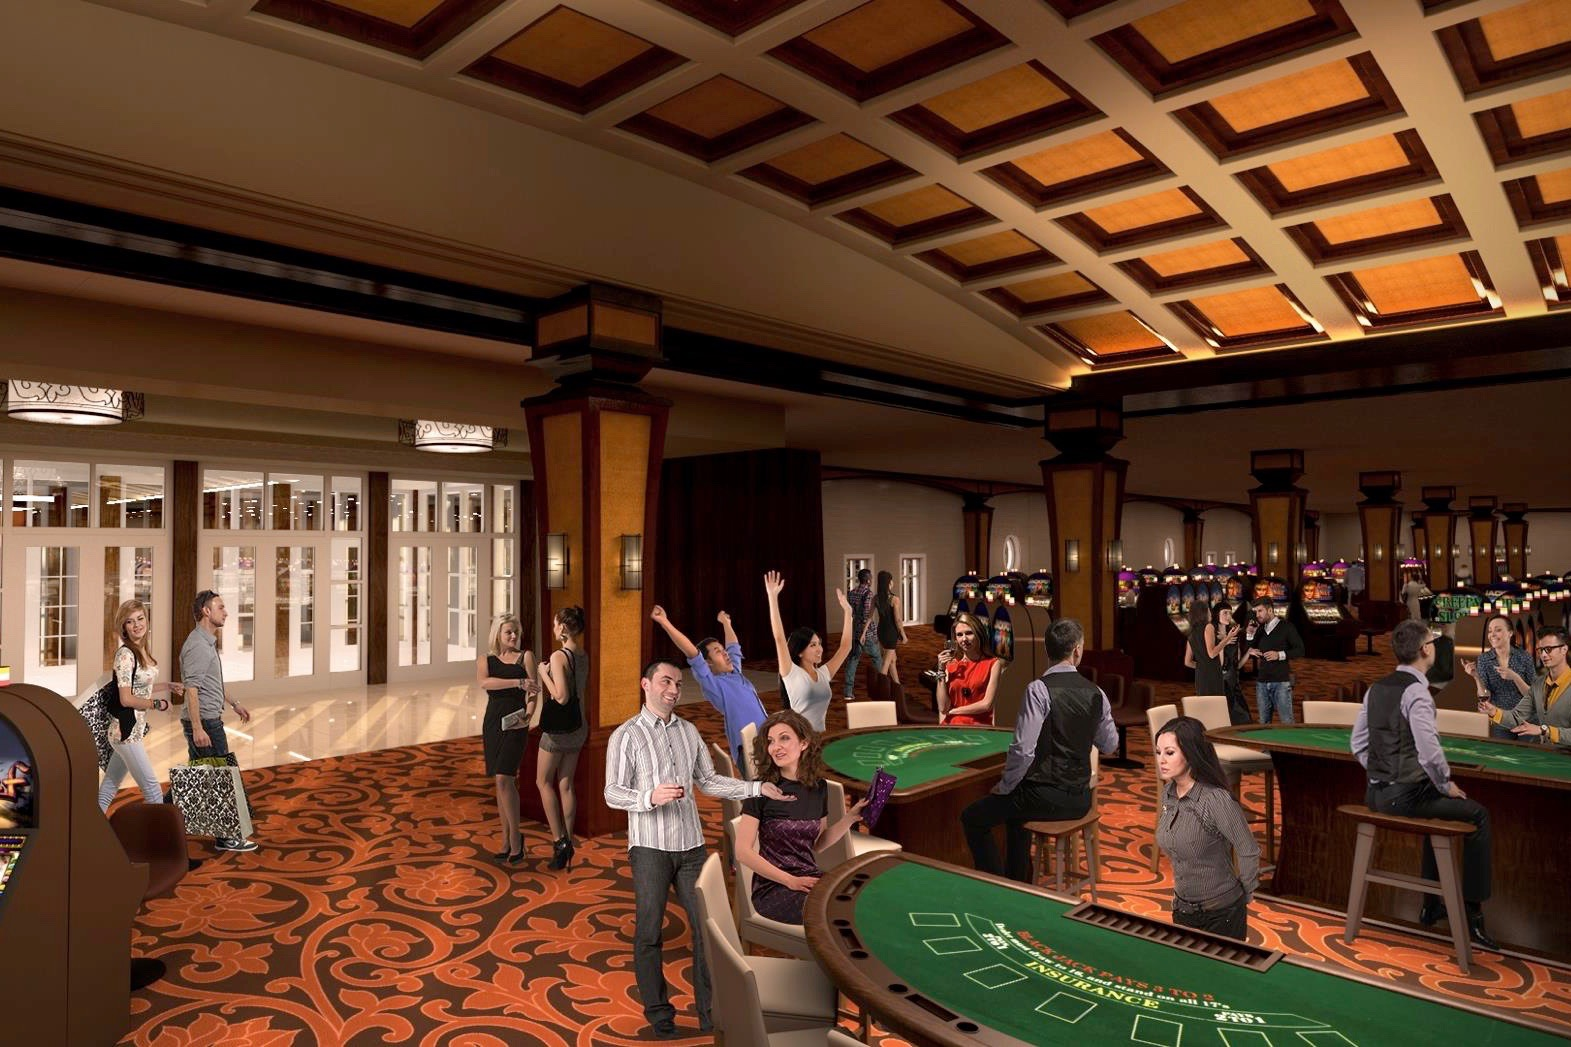 Non-Indian developer asks Rhode Island voters to approve casino